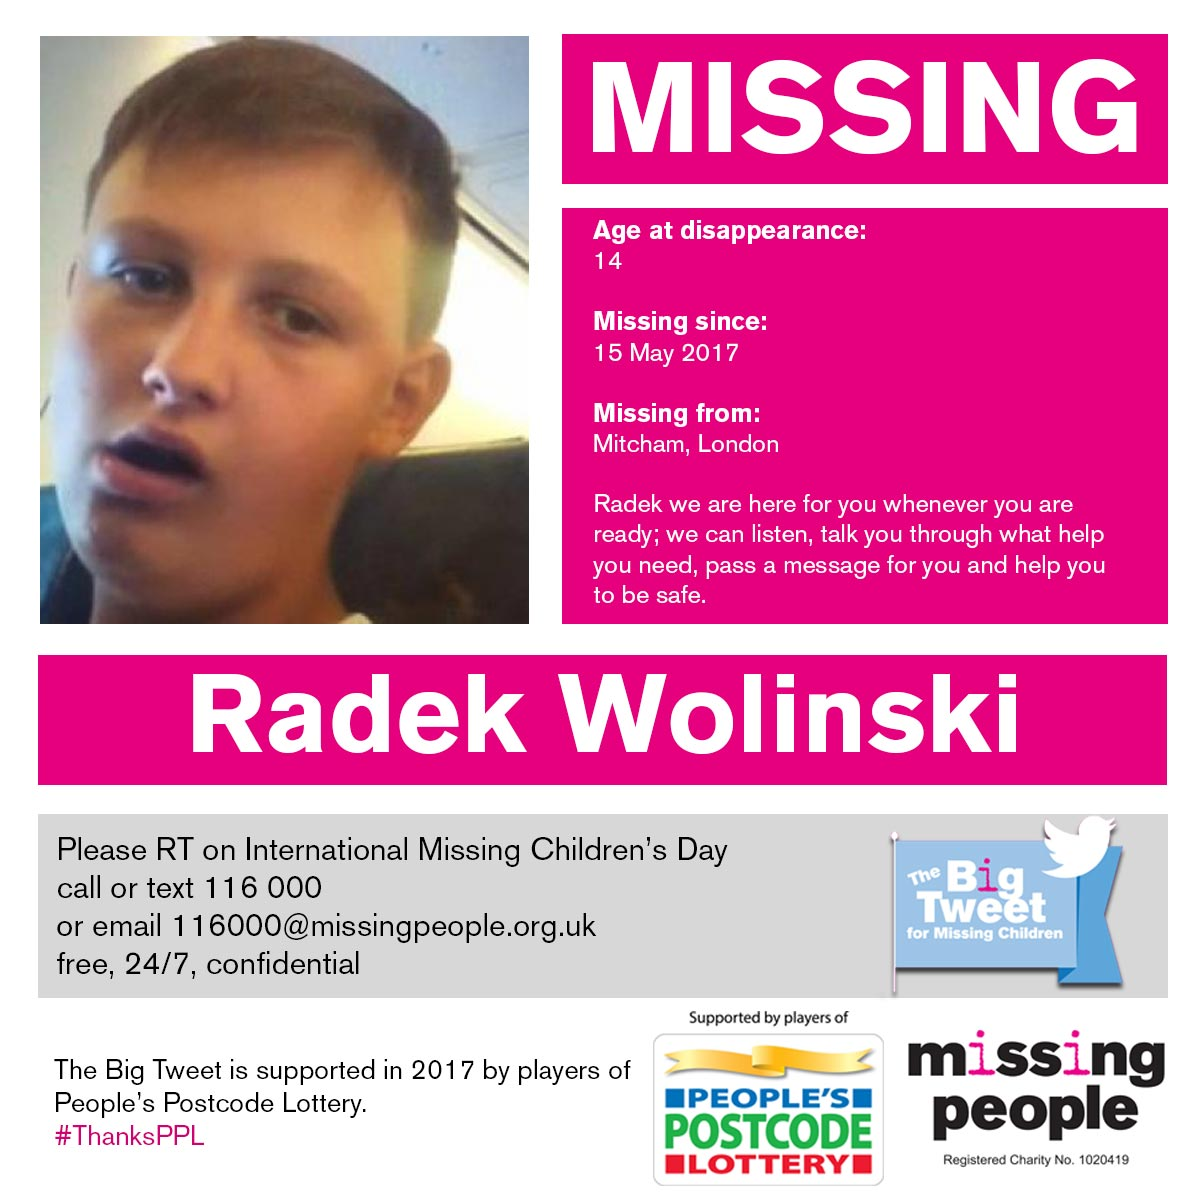 Help #findRadek, missing from #London since 15 May  http://www. misspl.co/ZSCQ30c0KE6  &nbsp;   #TeamBigTweet #ThanksPPL<br>http://pic.twitter.com/bnOVkQeZyM